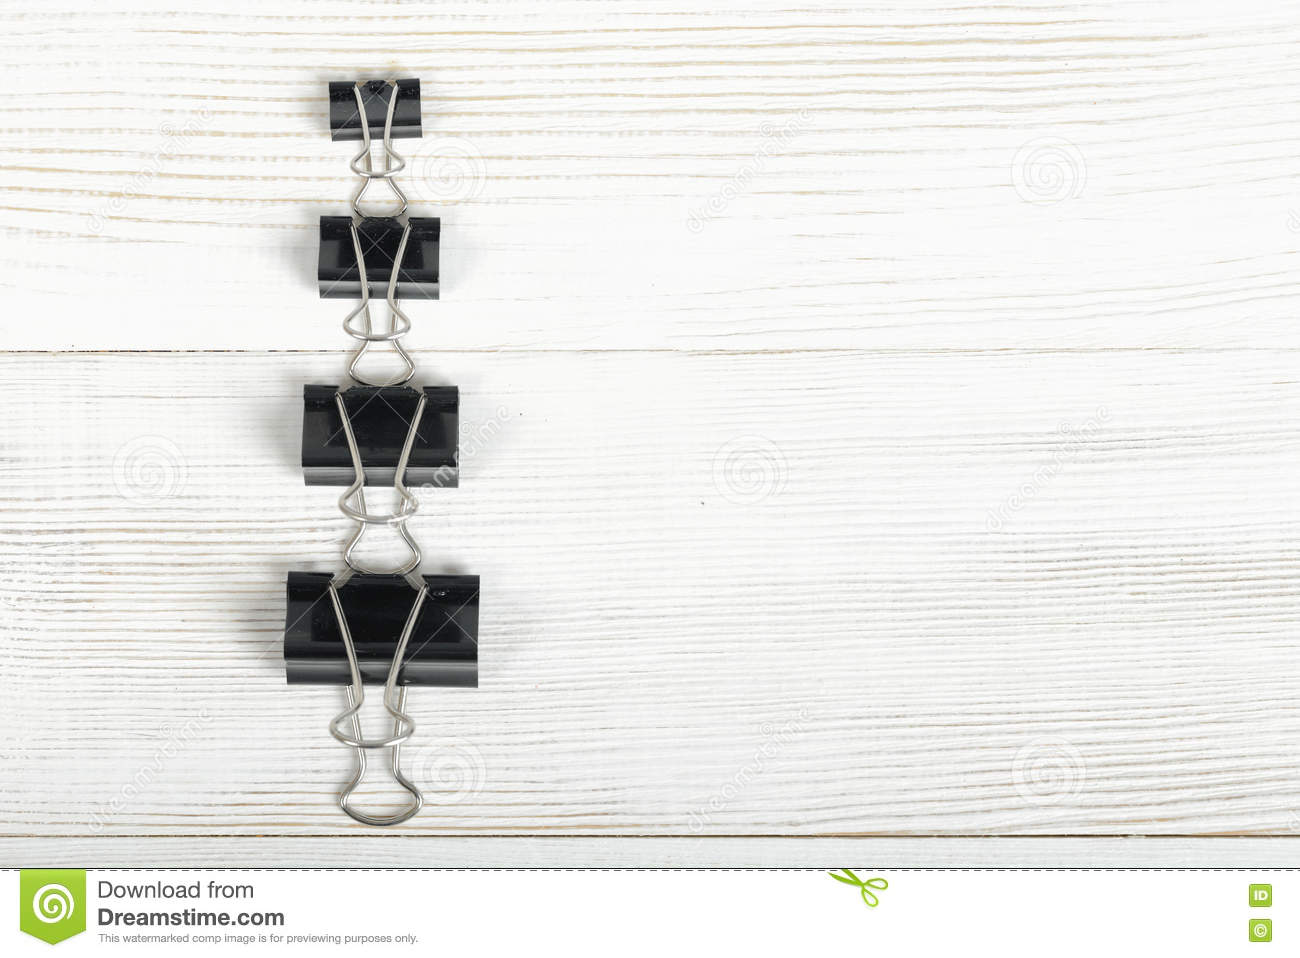 black binder clips posted from the biggest to smallest on a wooden